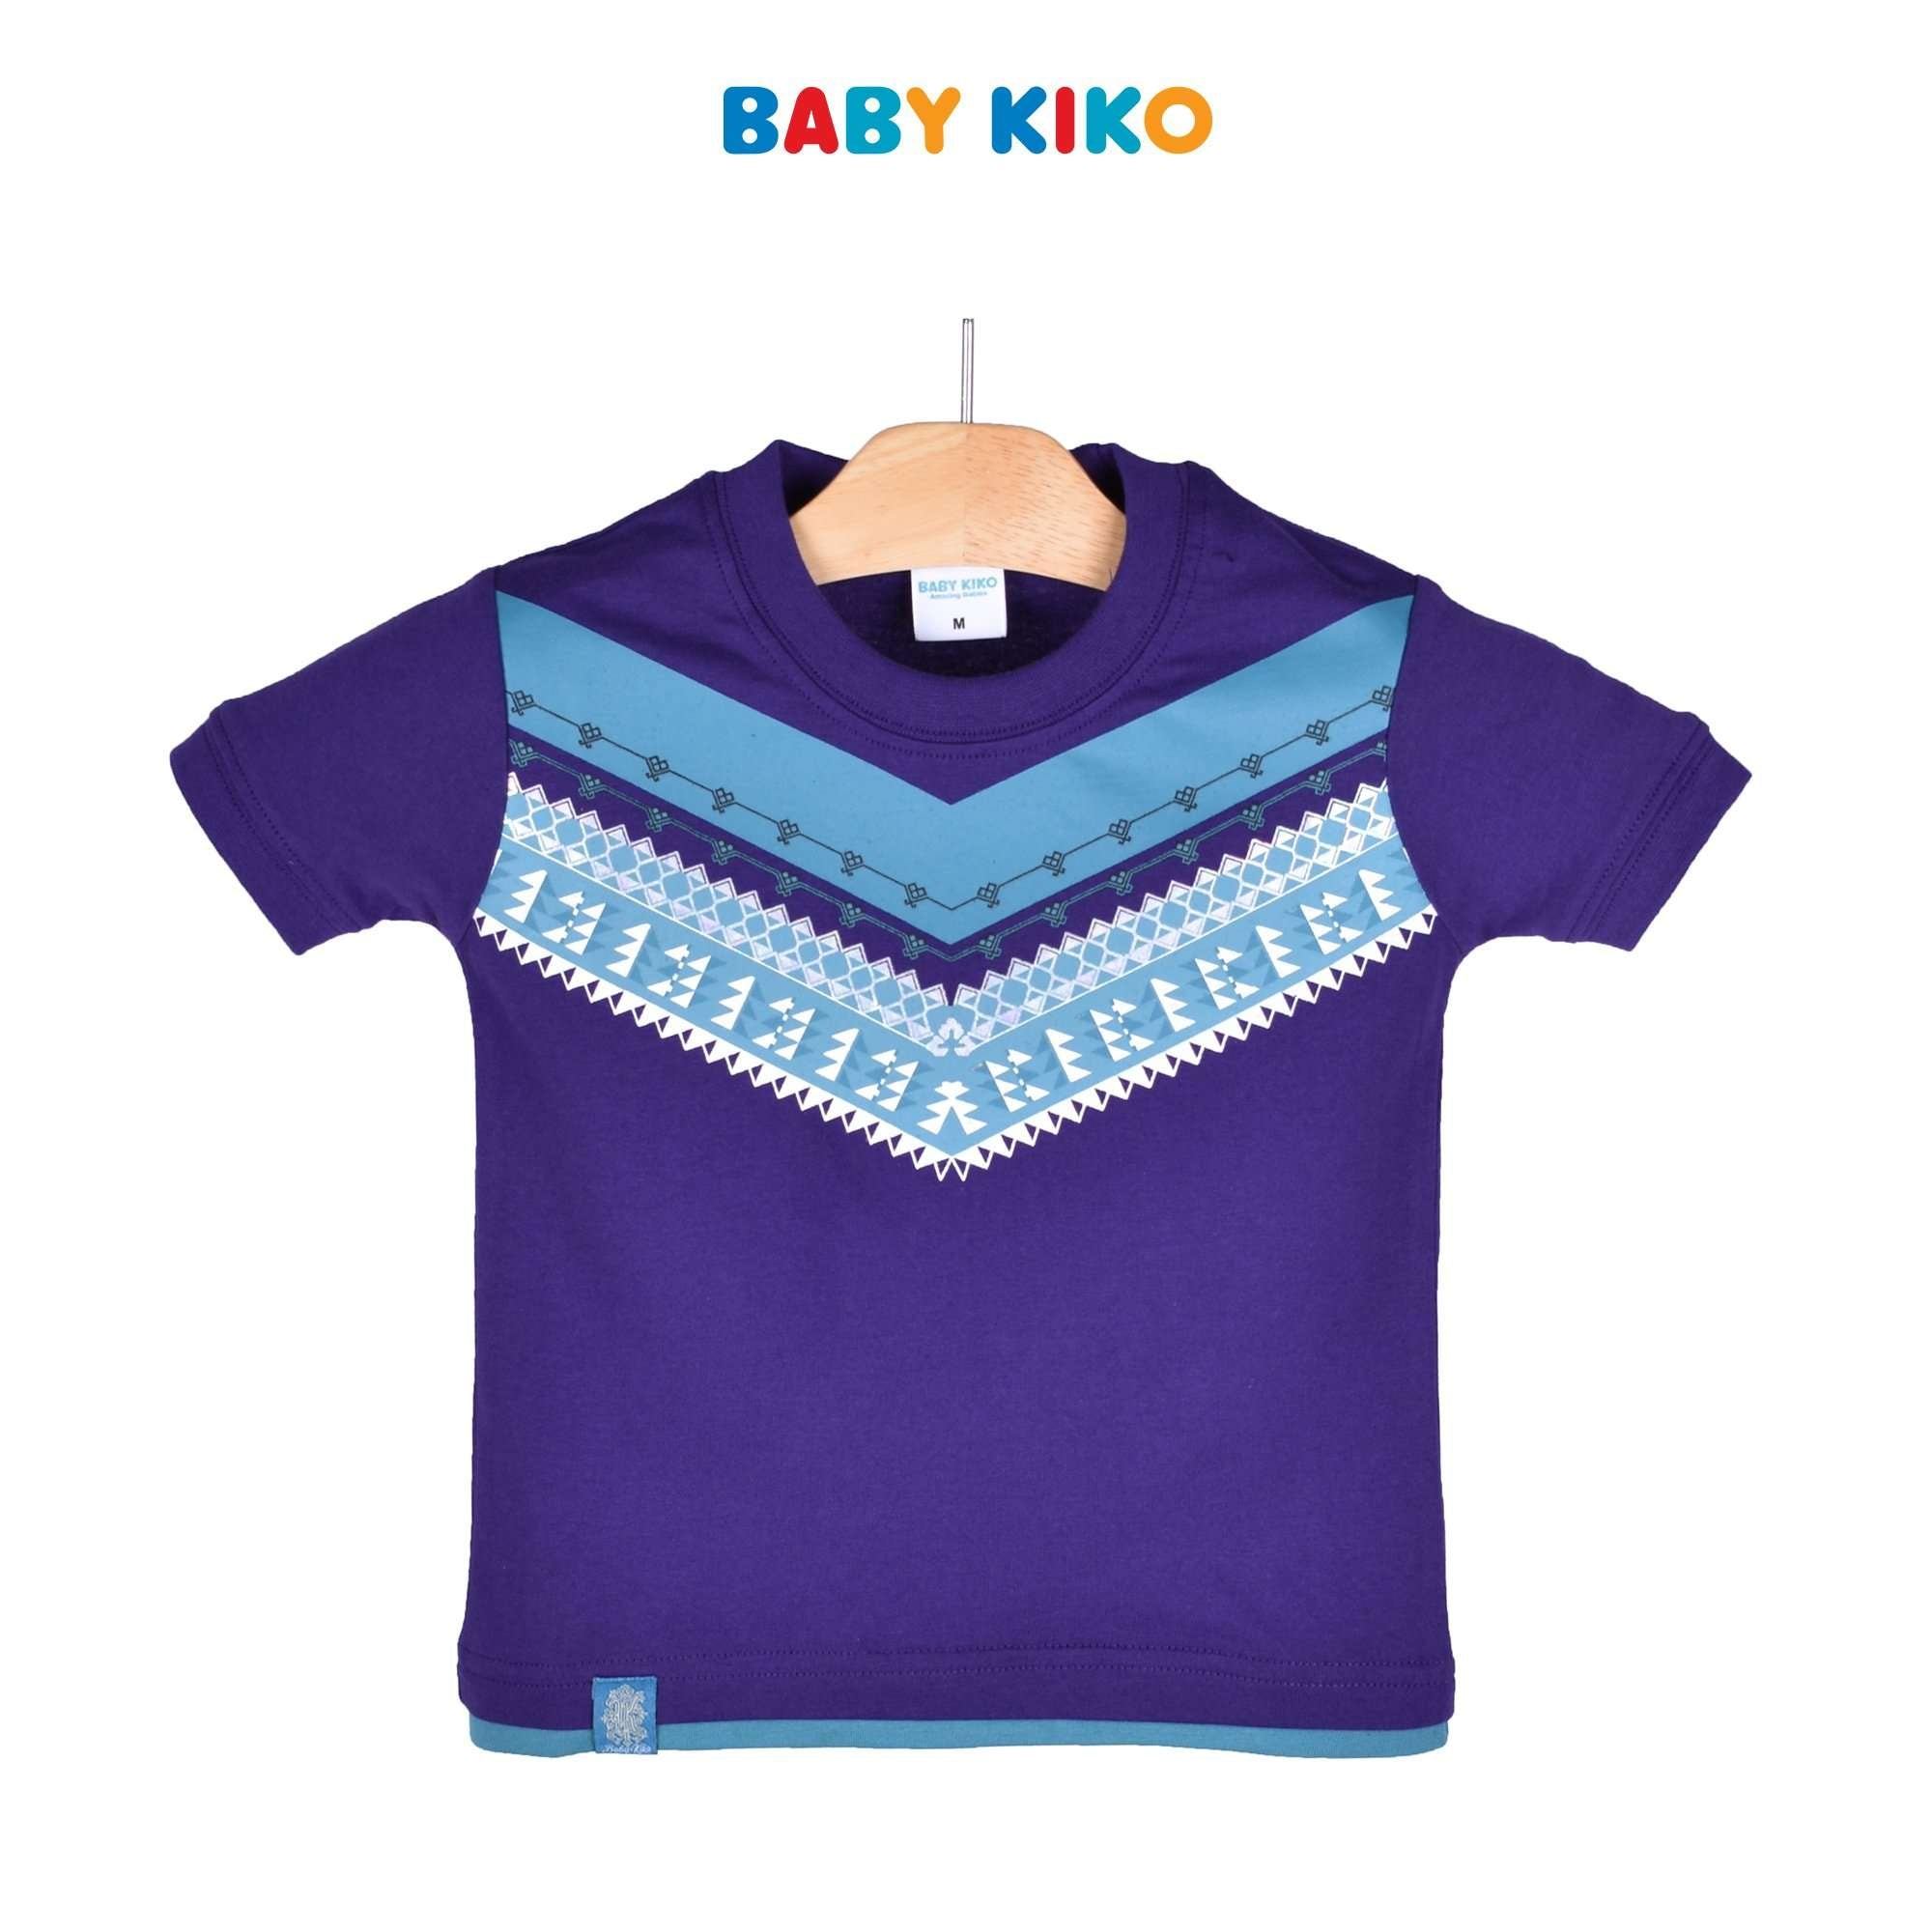 Baby KIKO Toddler Boy Short Sleeve Tee 335116-111 : Buy Baby KIKO online at CMG.MY